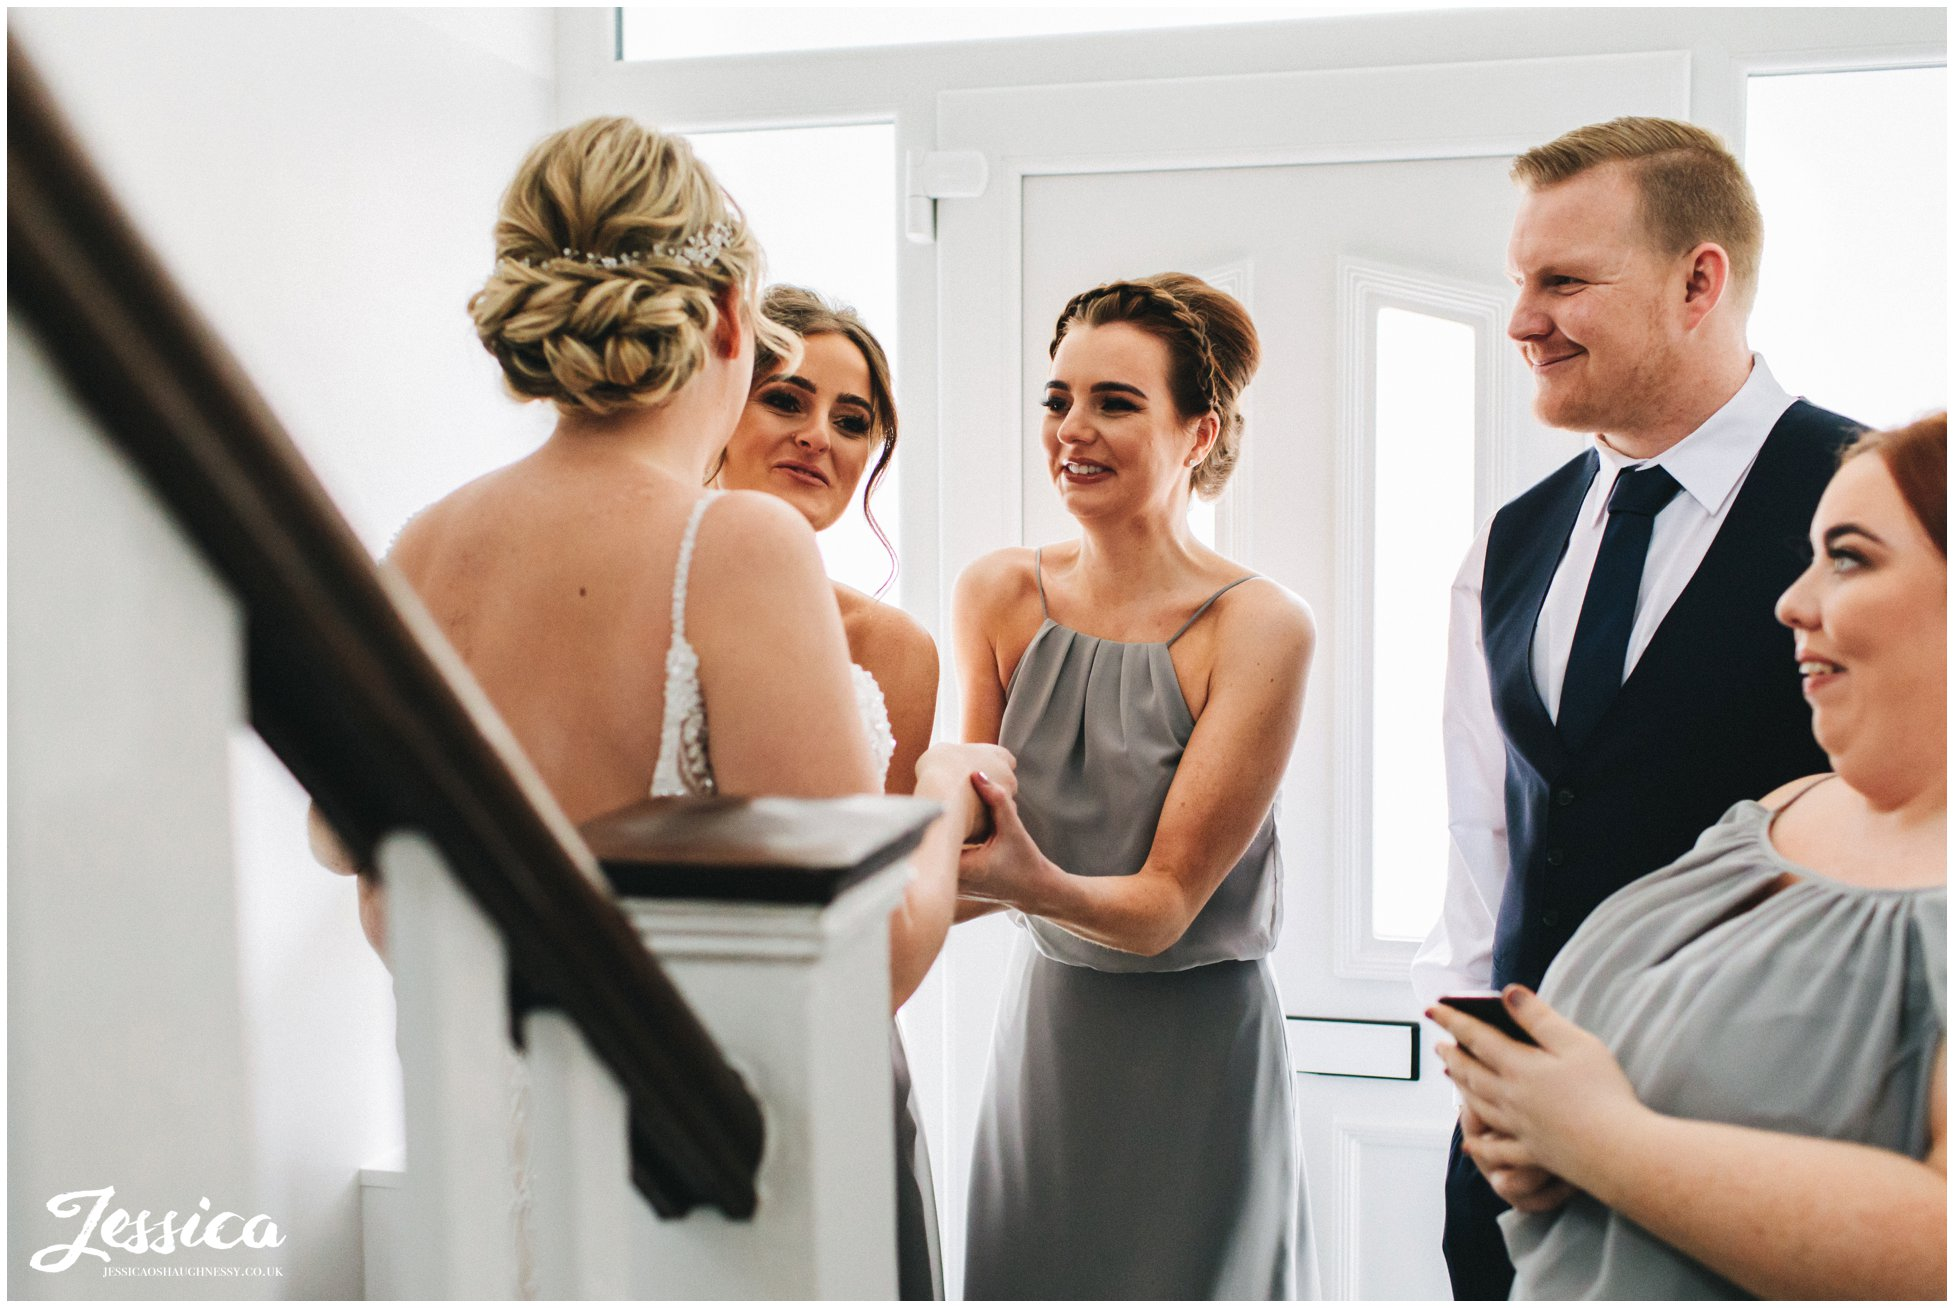 the bridal party get emotional seeing the bride in her dress